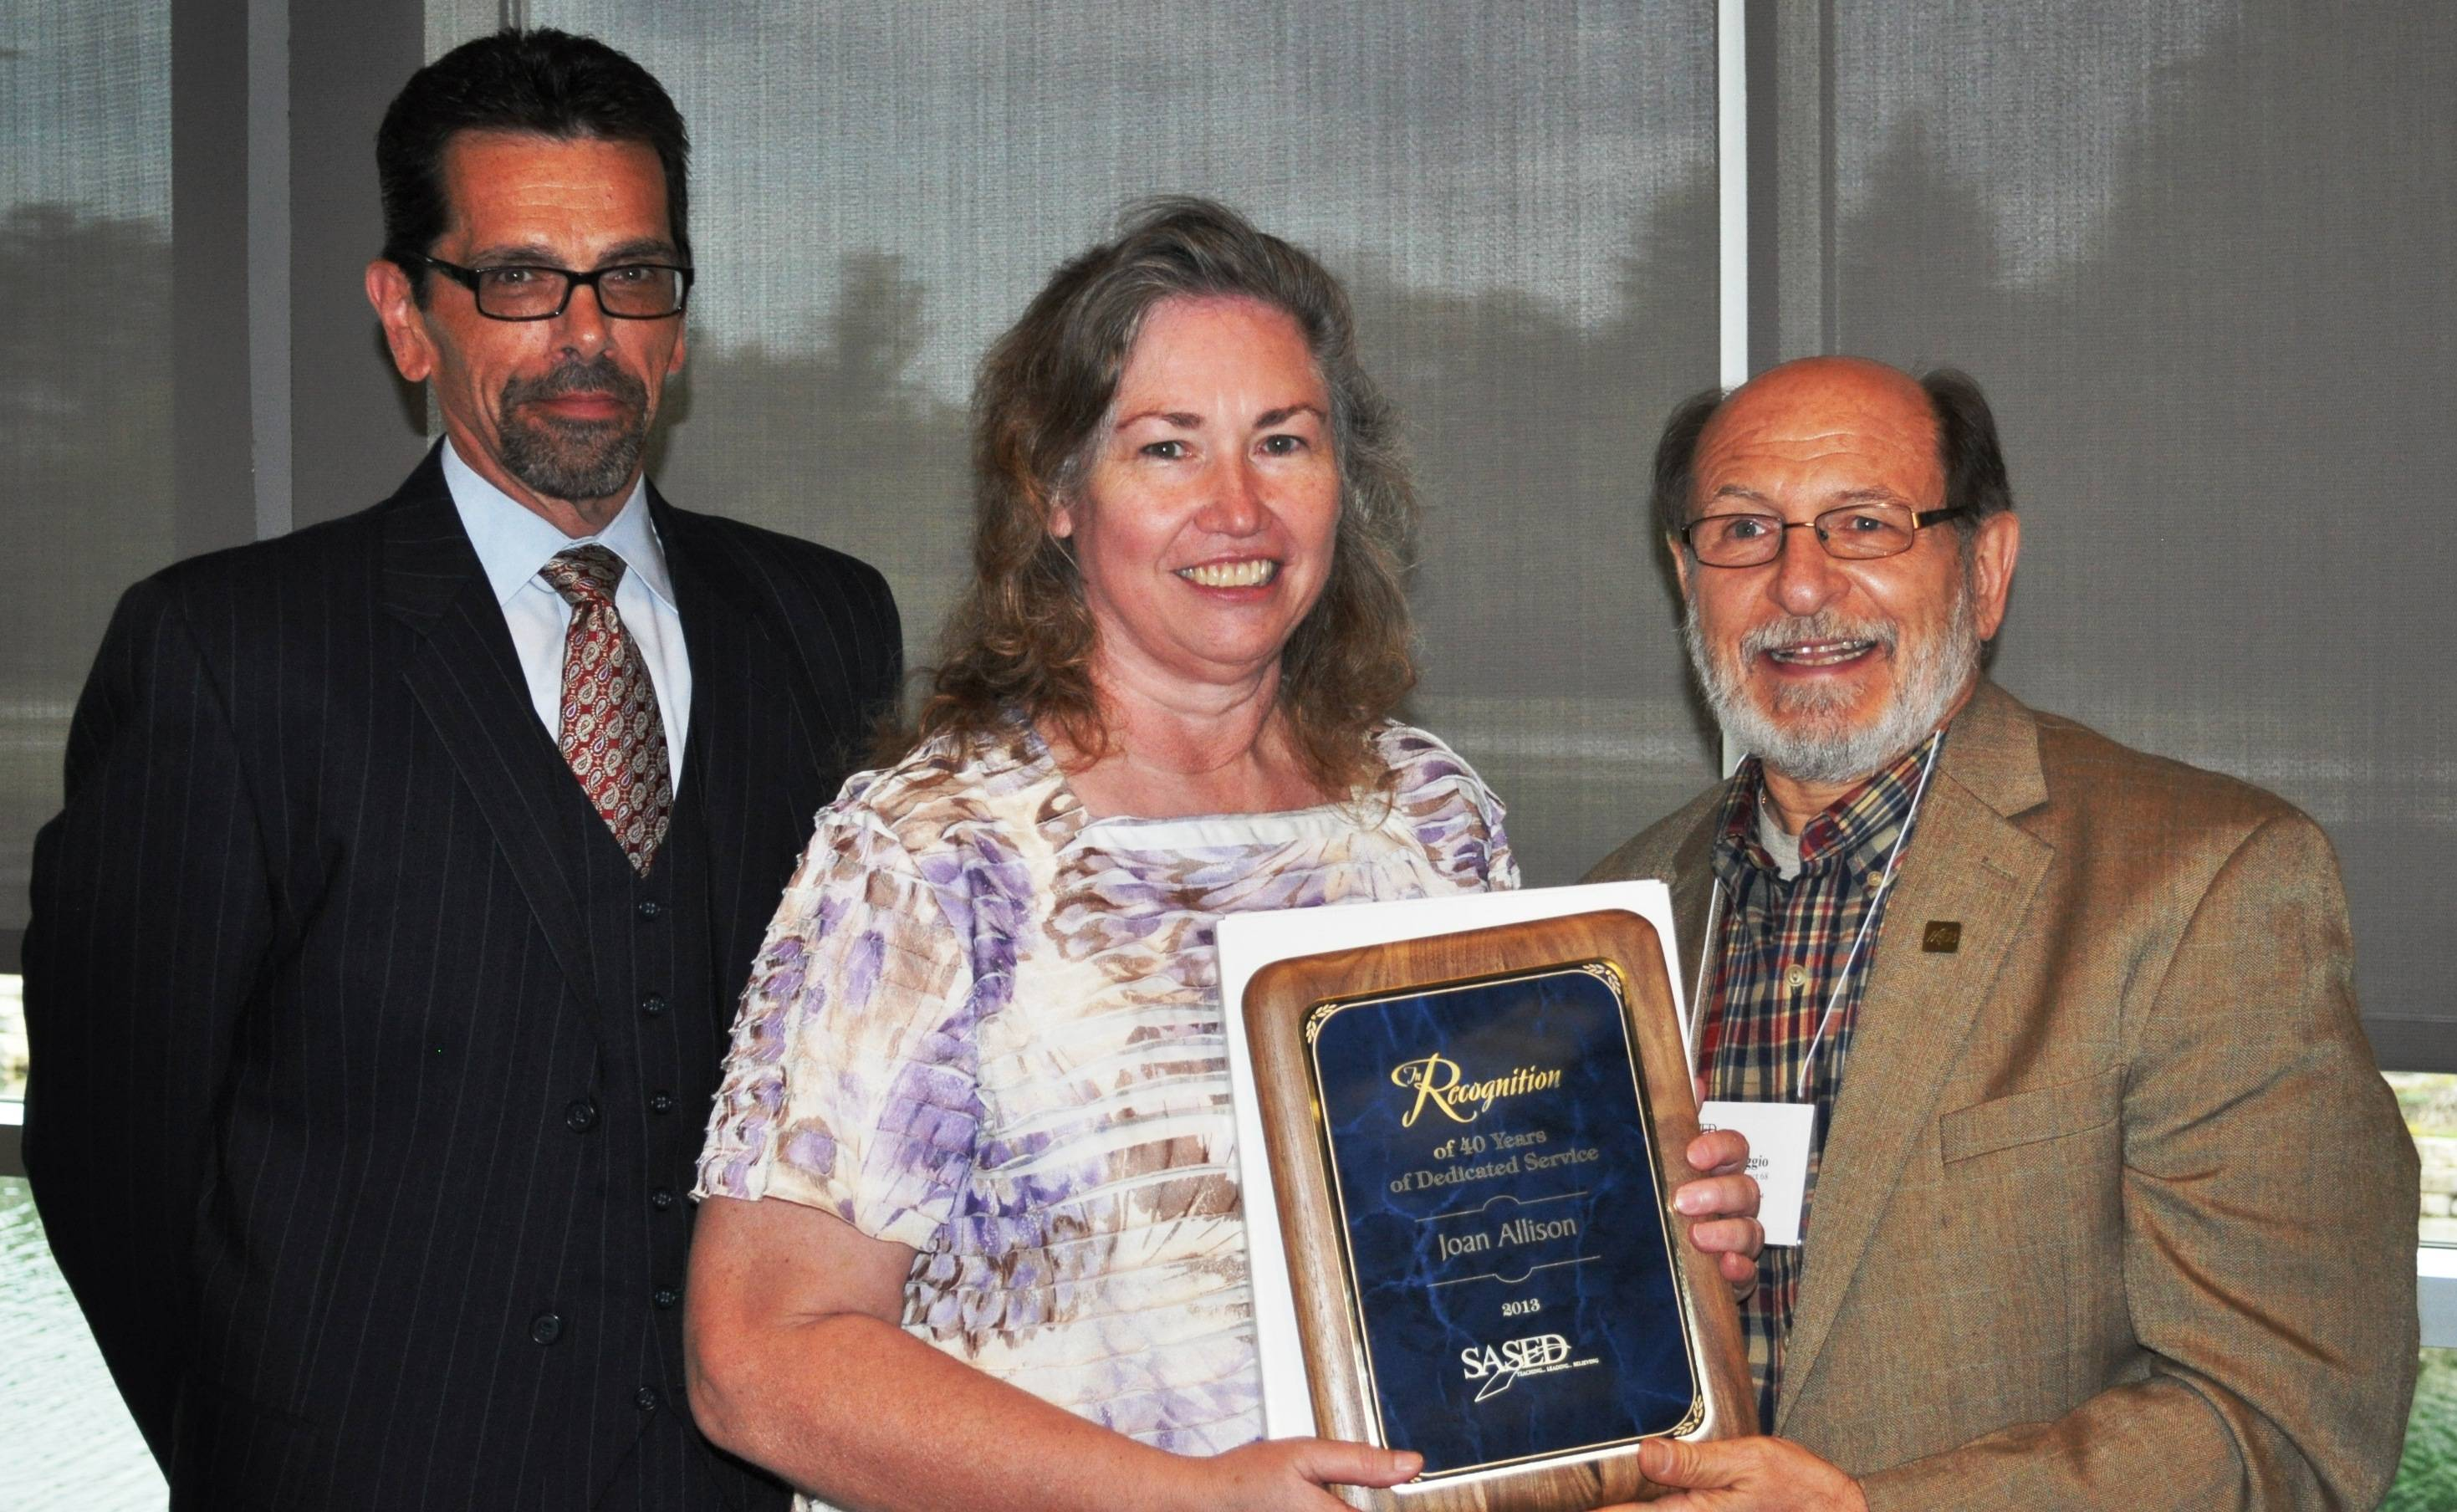 Joan Allison (center) receiving award from Tom Ruggio (right), SASED Board of Control Chairperson and Dr. Michael Volpe (left), SASED Executive Director